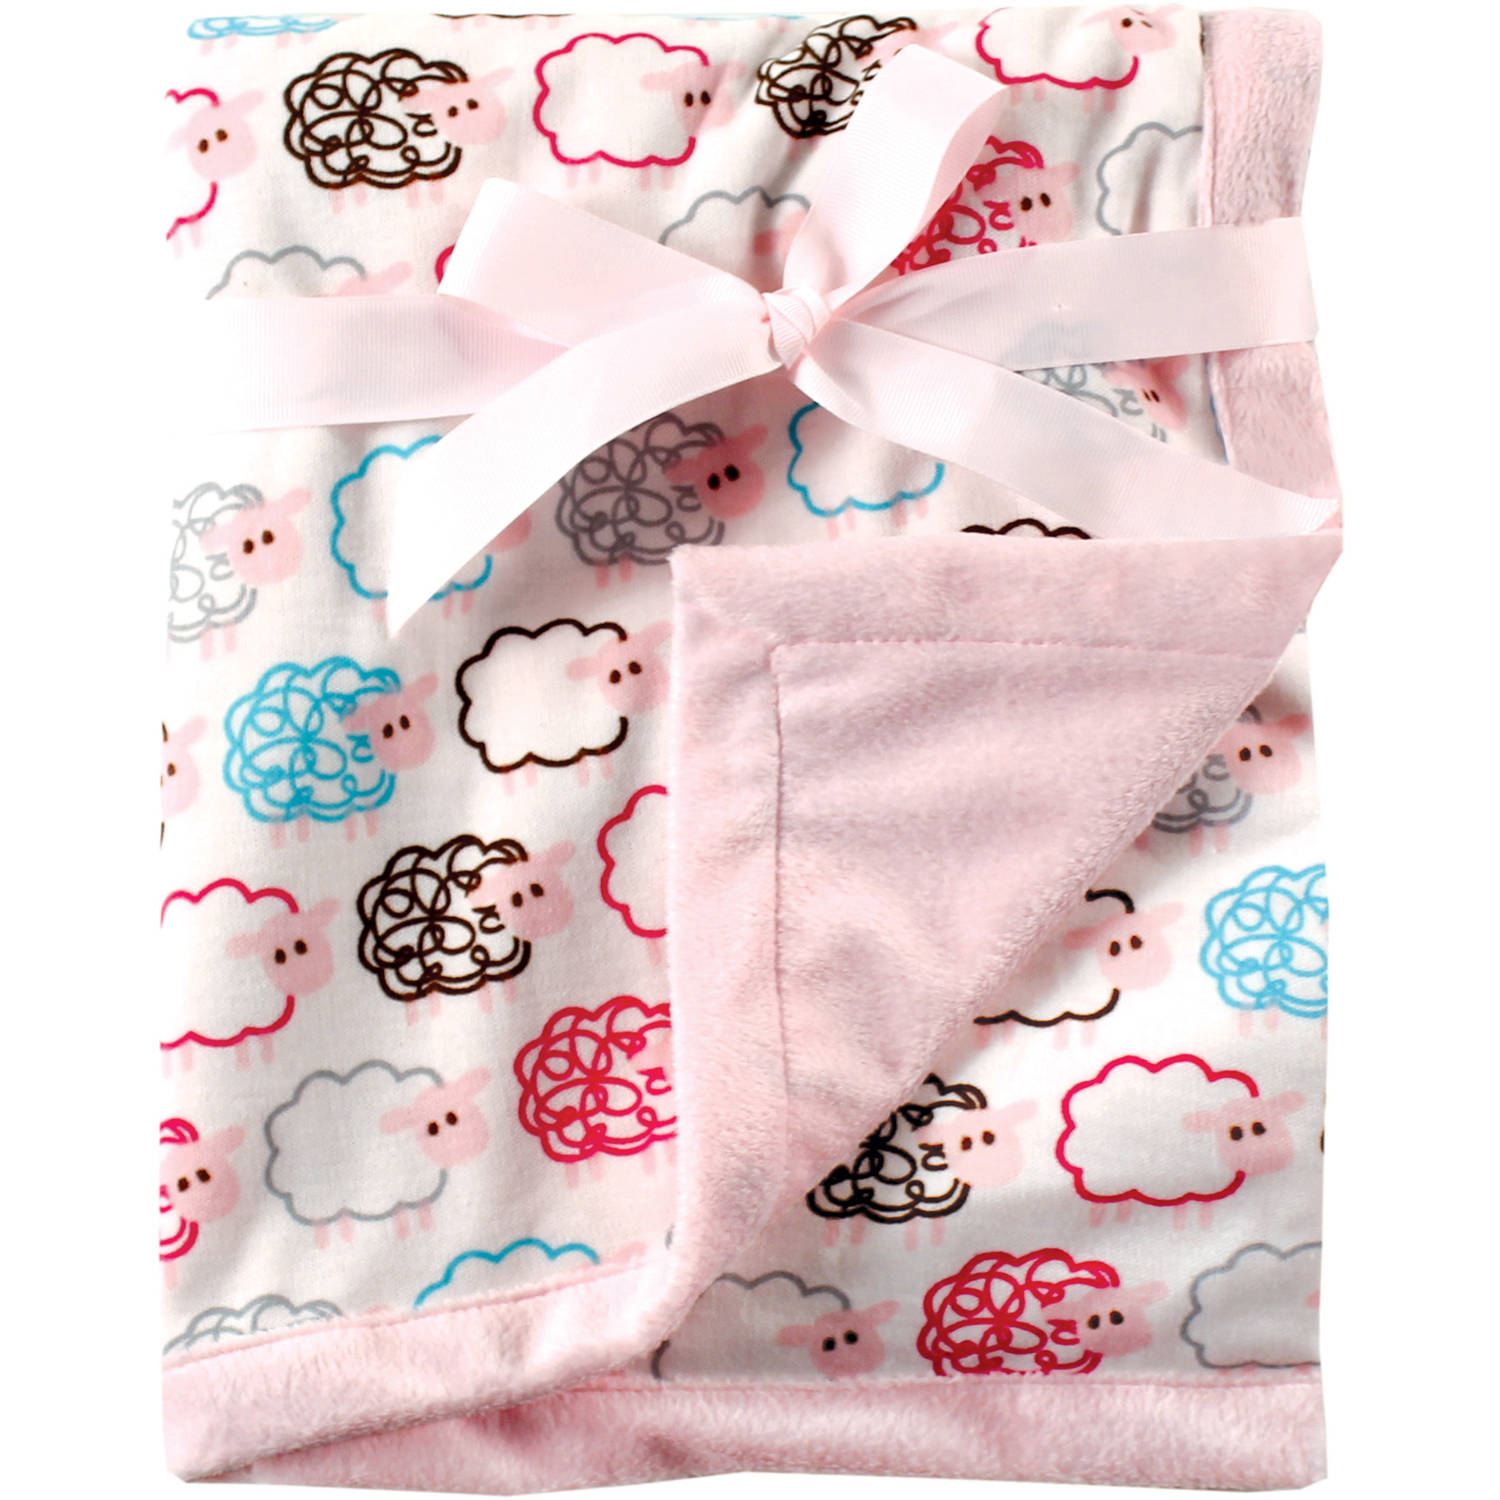 Hudson Baby Printed Blanket with Plush Backing, Pink